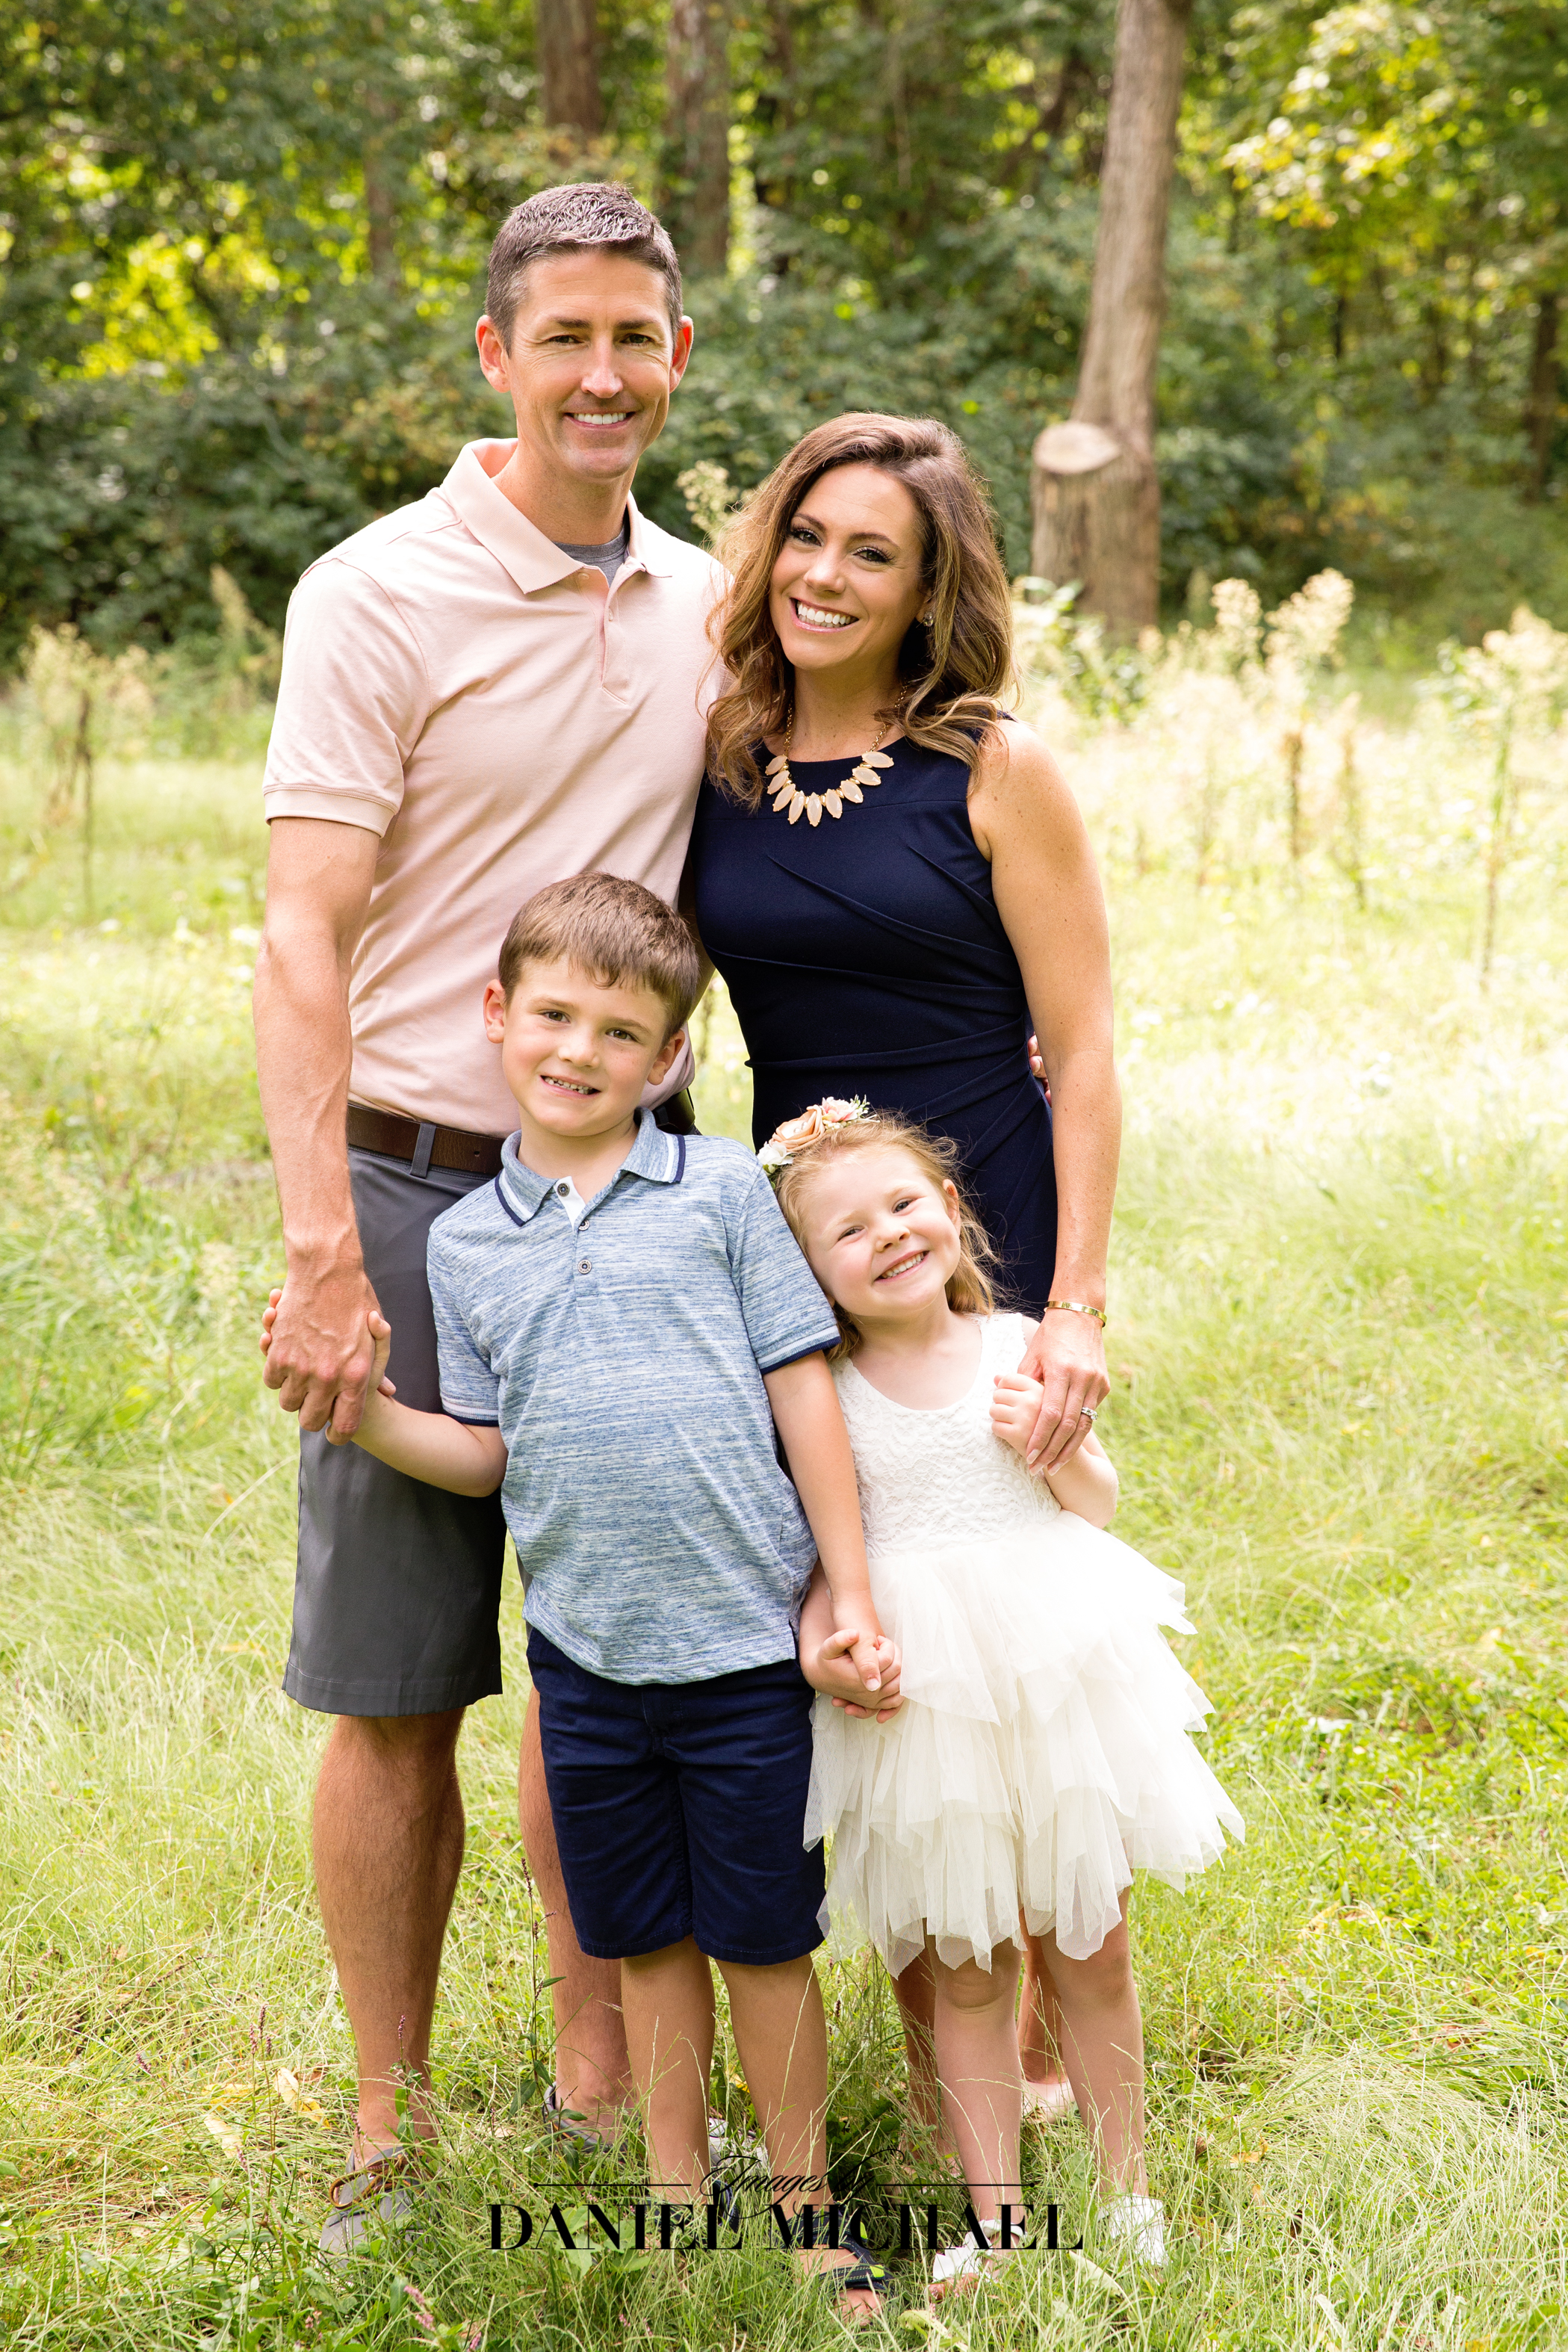 Cincinnati Family Photographer, Daniel Michael, Sharon Woods, Jessica Rist